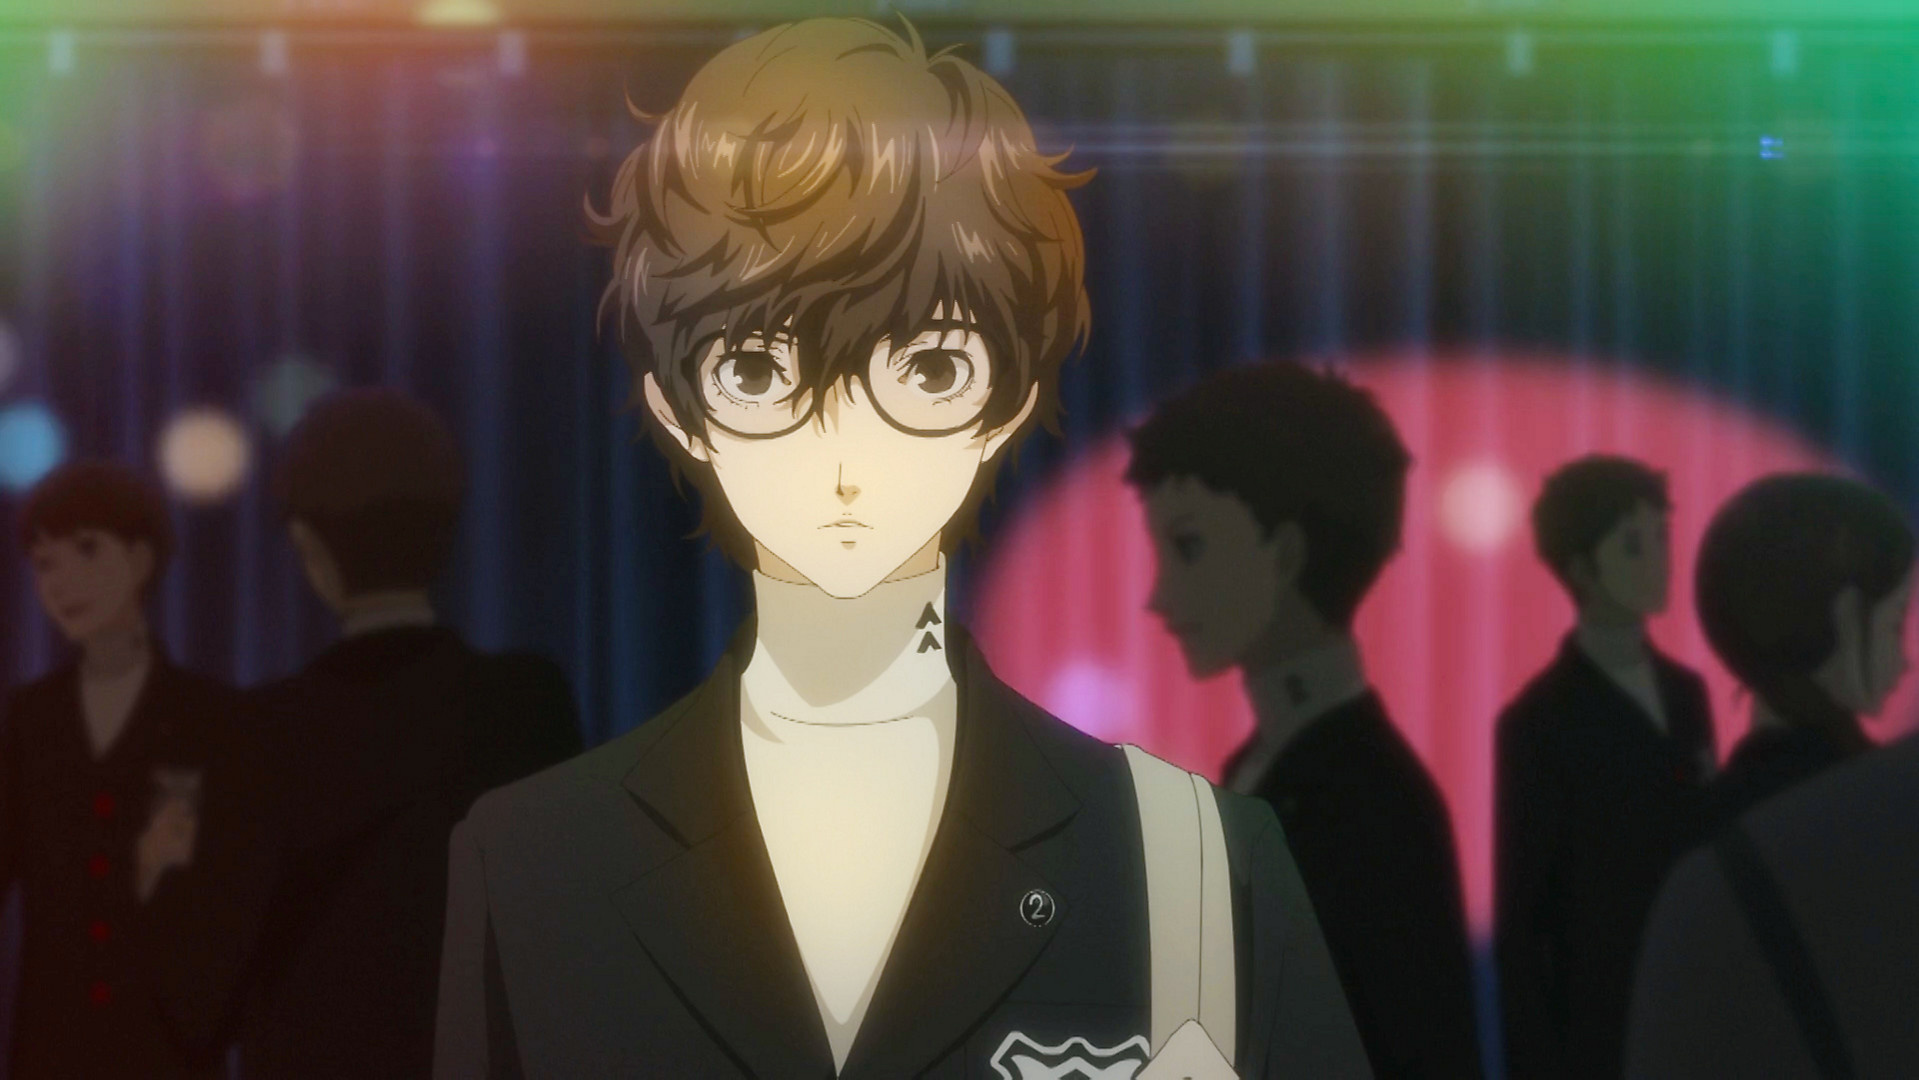 You persona someone 5 love them tell You See